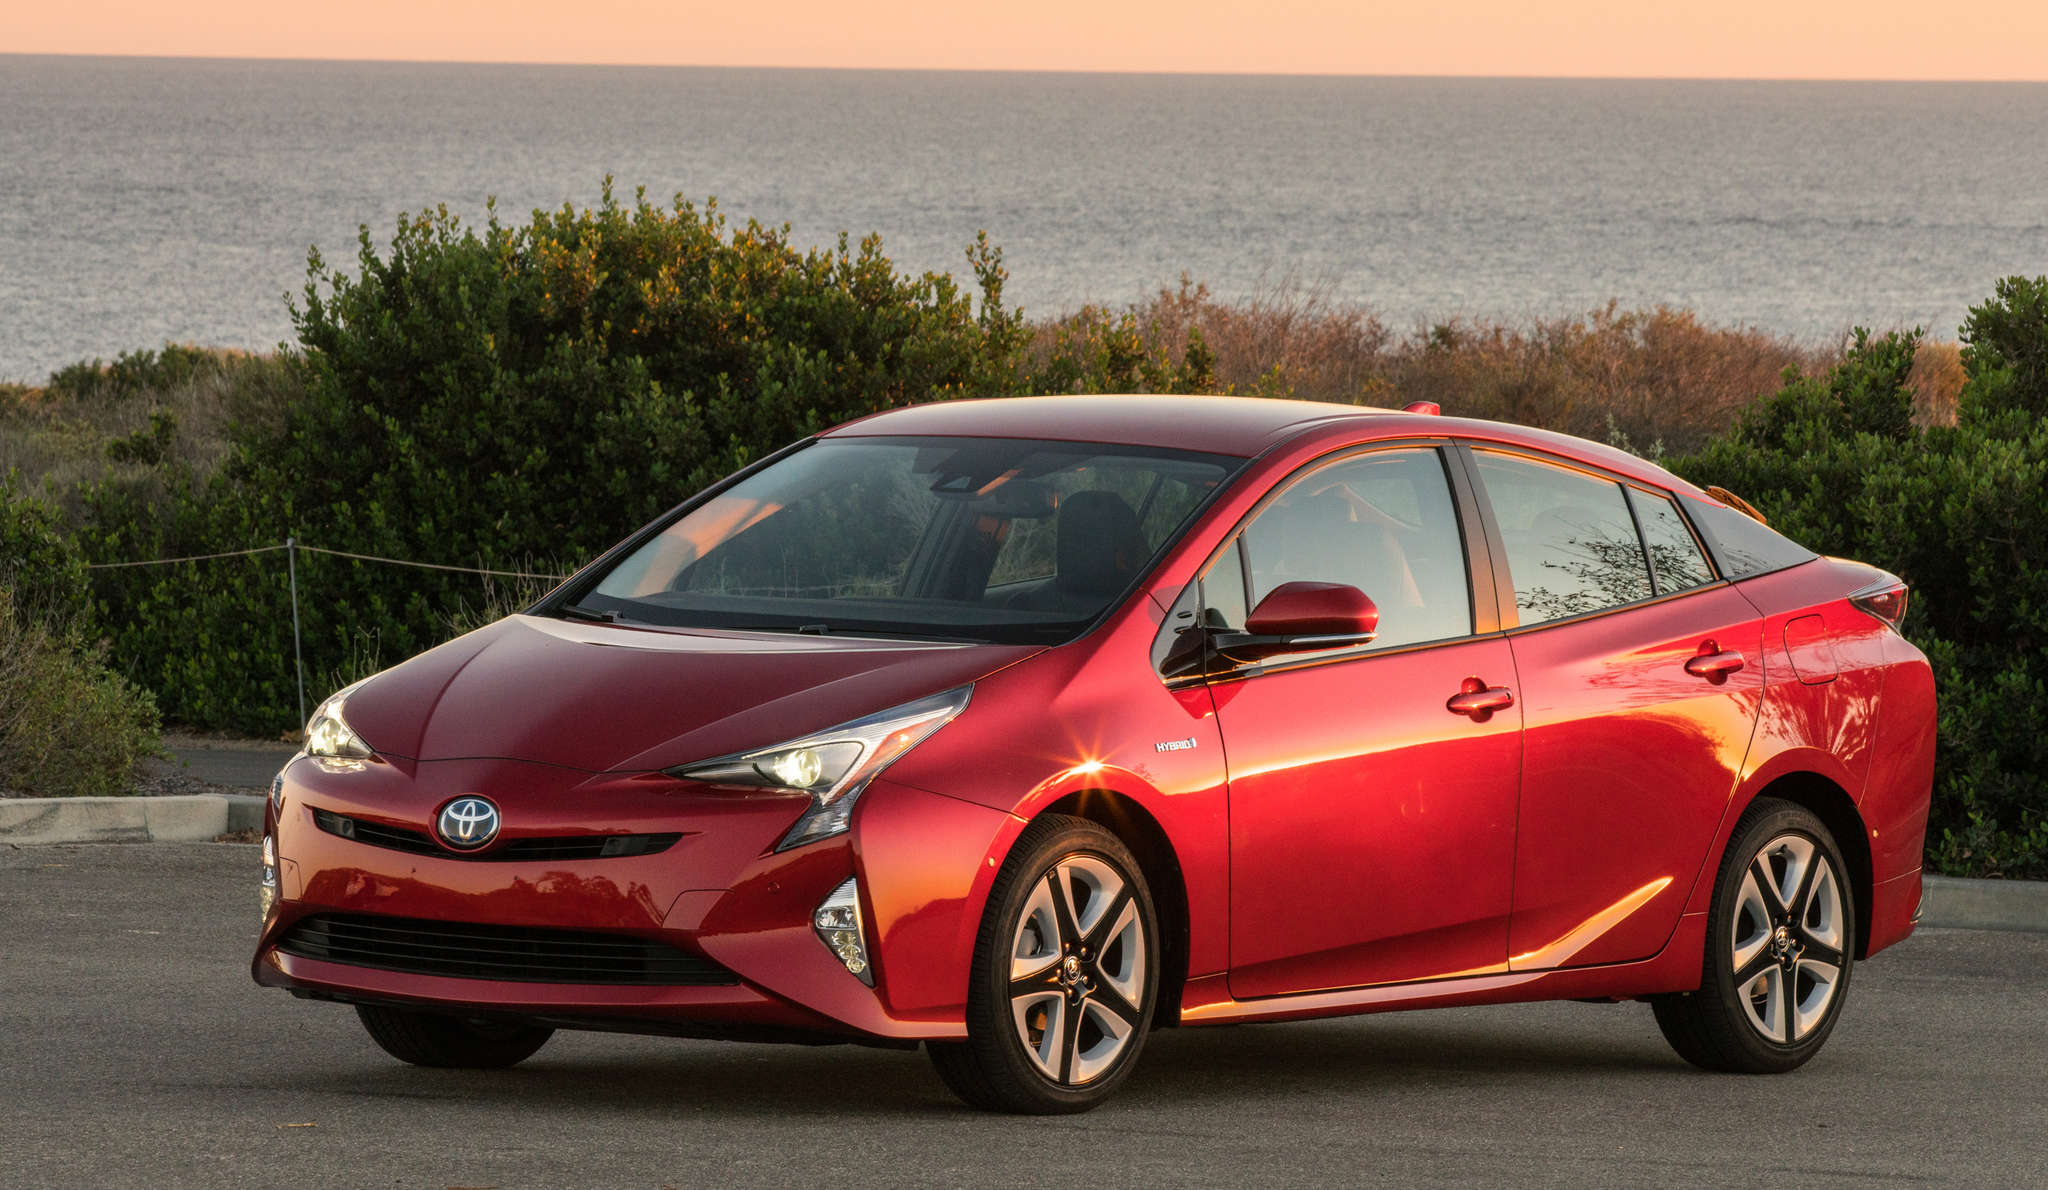 The 2016 Toyota Prius gets a new look for this model year, with sharper headlights and taillights.